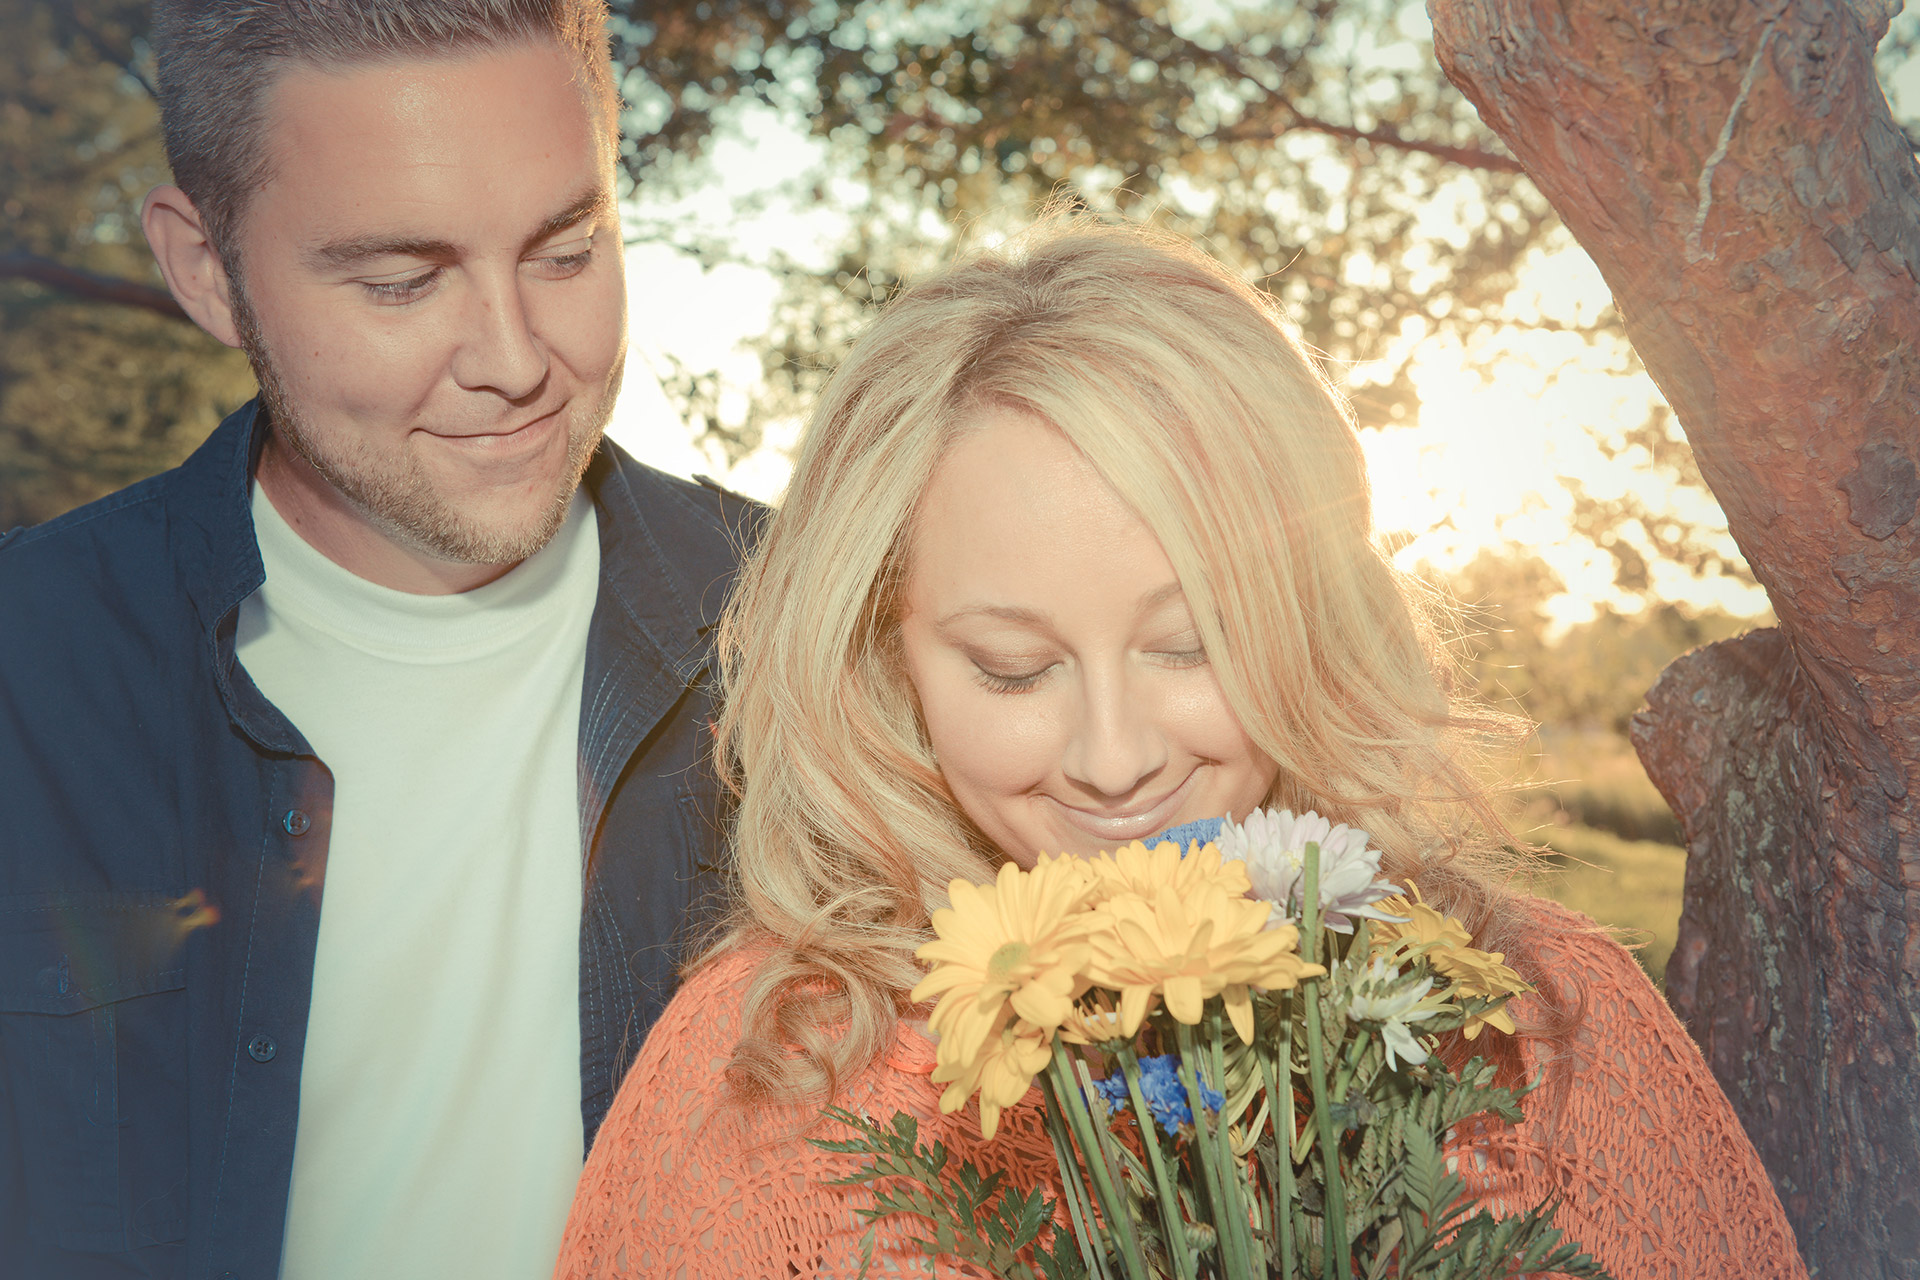 Engagement Photography Ideas